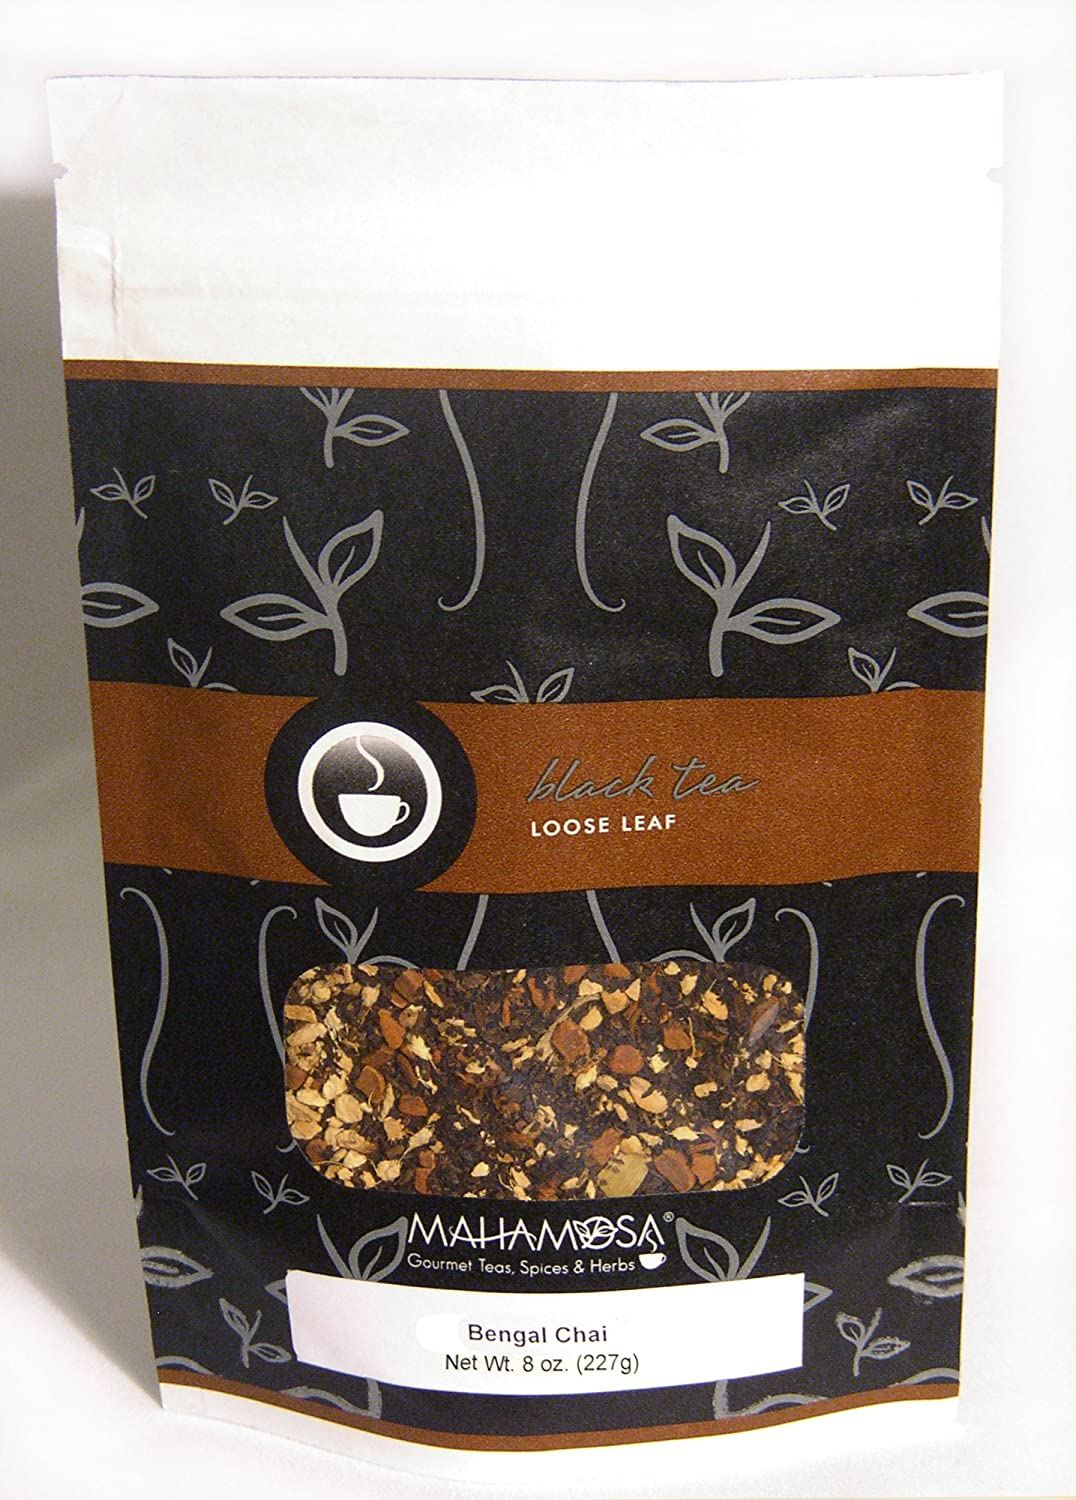 Mahamosa Black Chai Tea Loose Leaf (Looseleaf) - Bengal Chai 8 oz